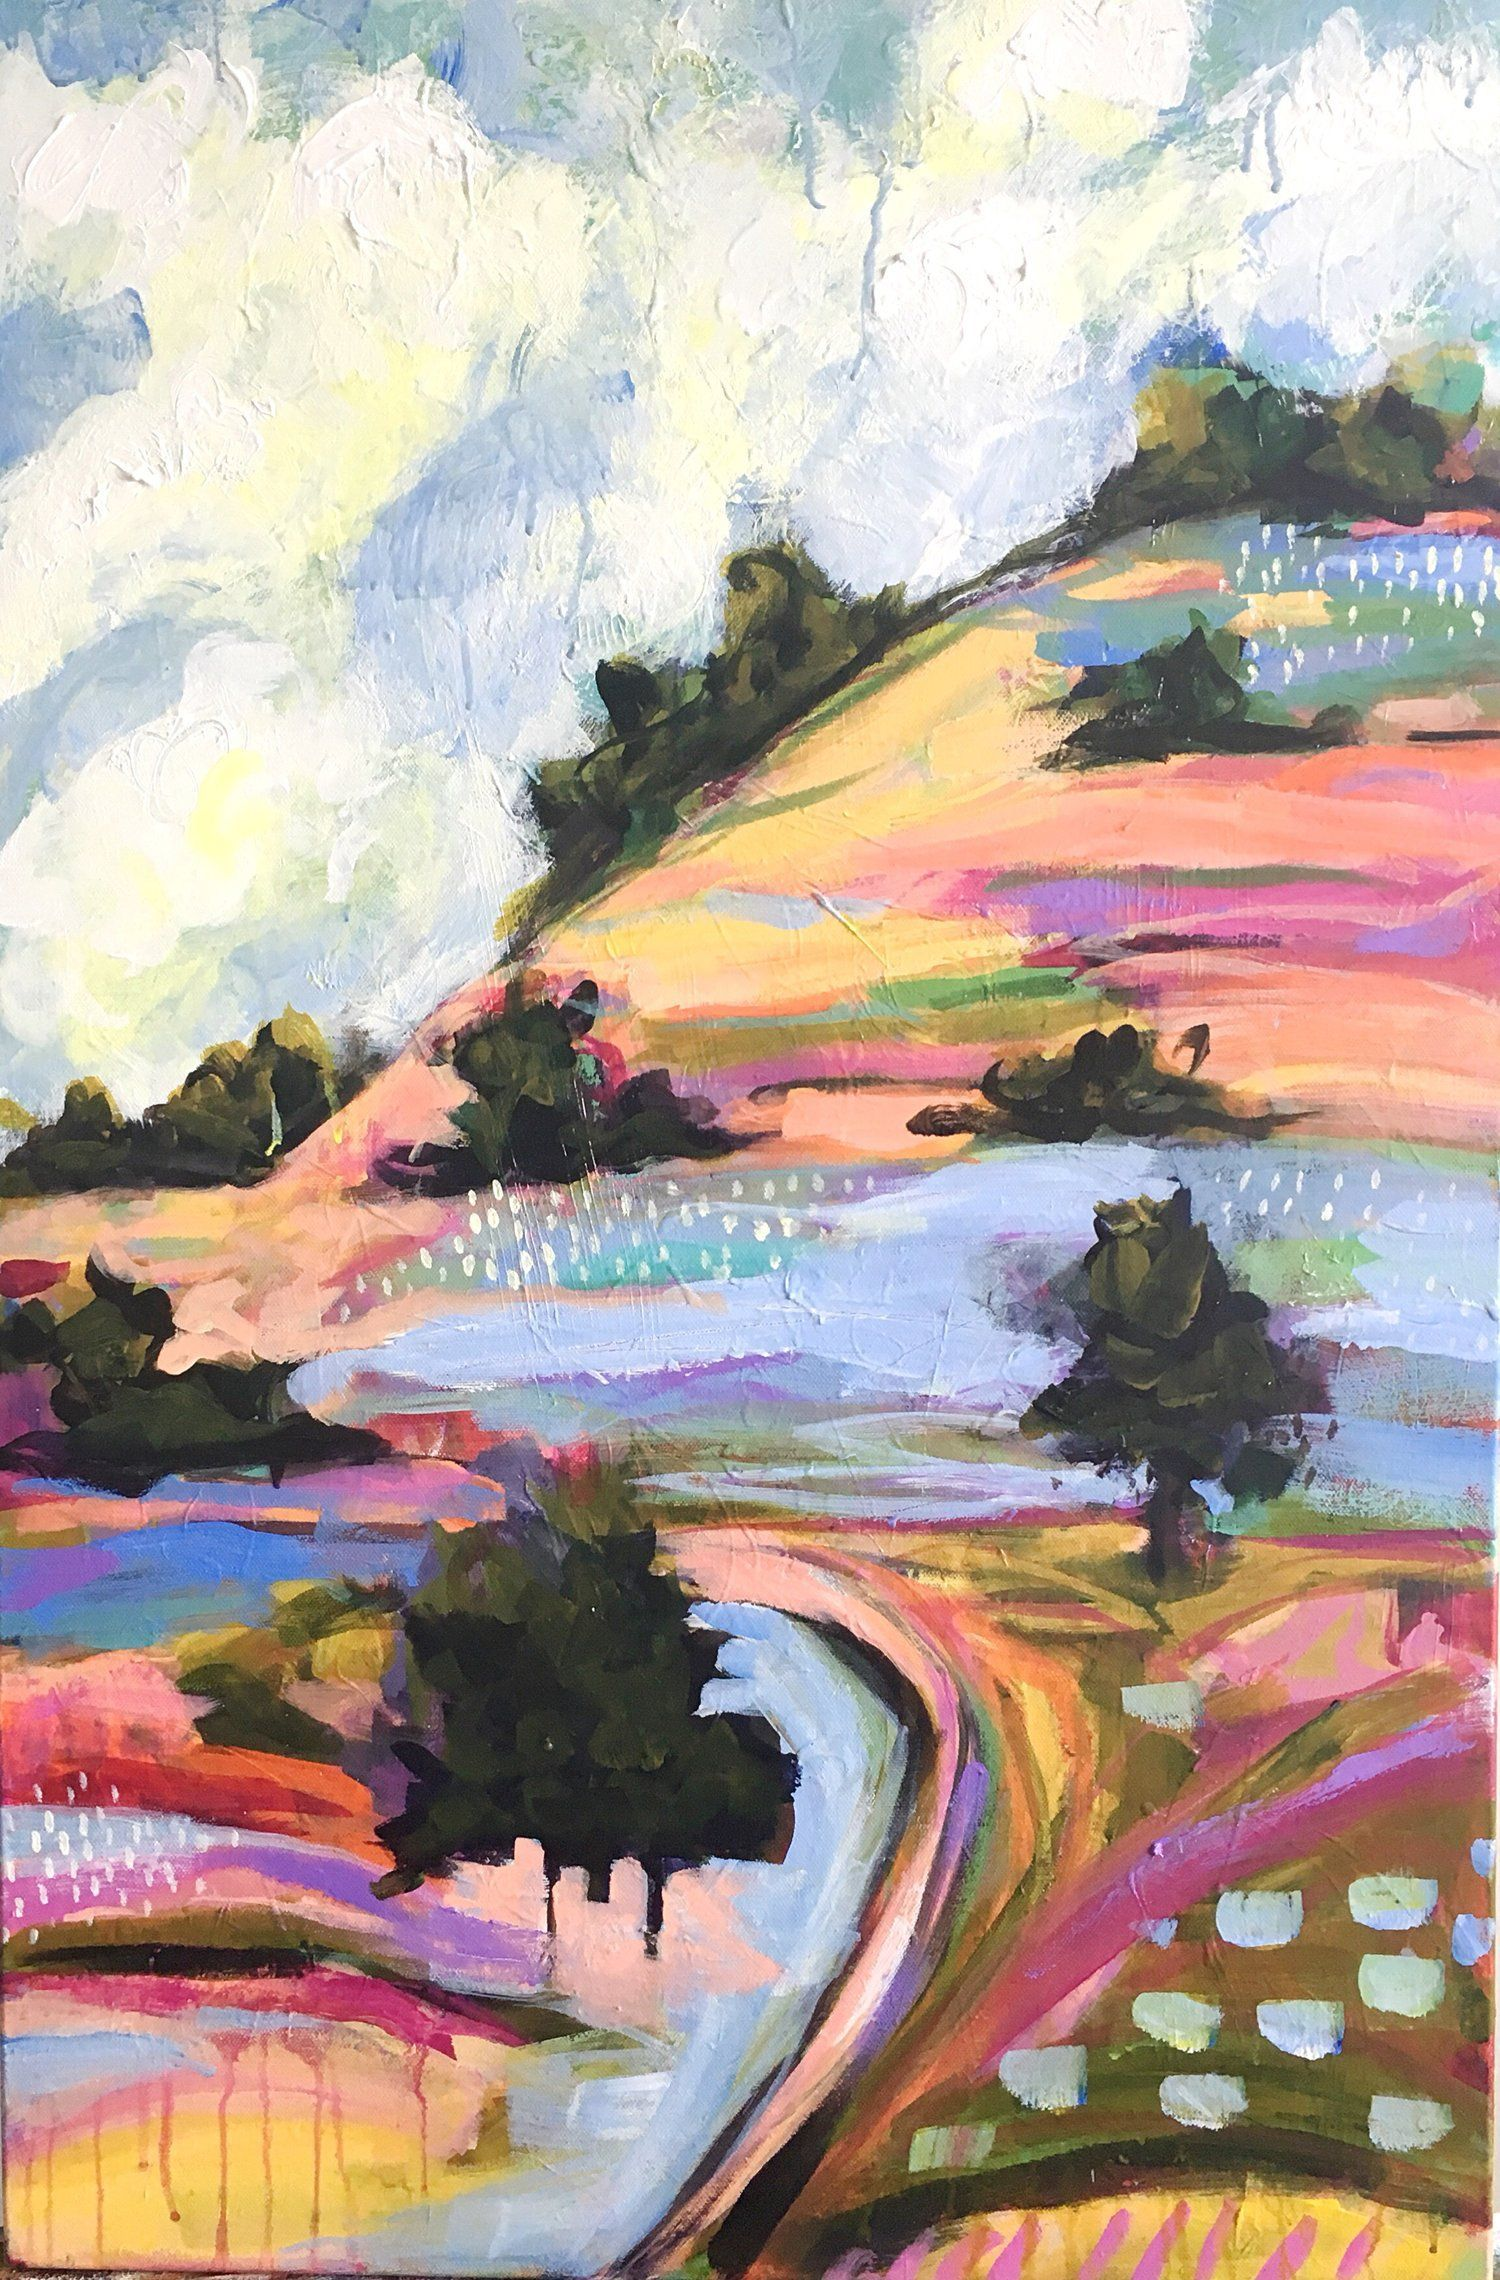 Colorful Abstract Landscapes By Nina Ramos Colorful Abstract Landscapes By Nina Ramos Nina Ramos Art In 2020 Abstract Abstract Landscape Painting Abstract Landscape